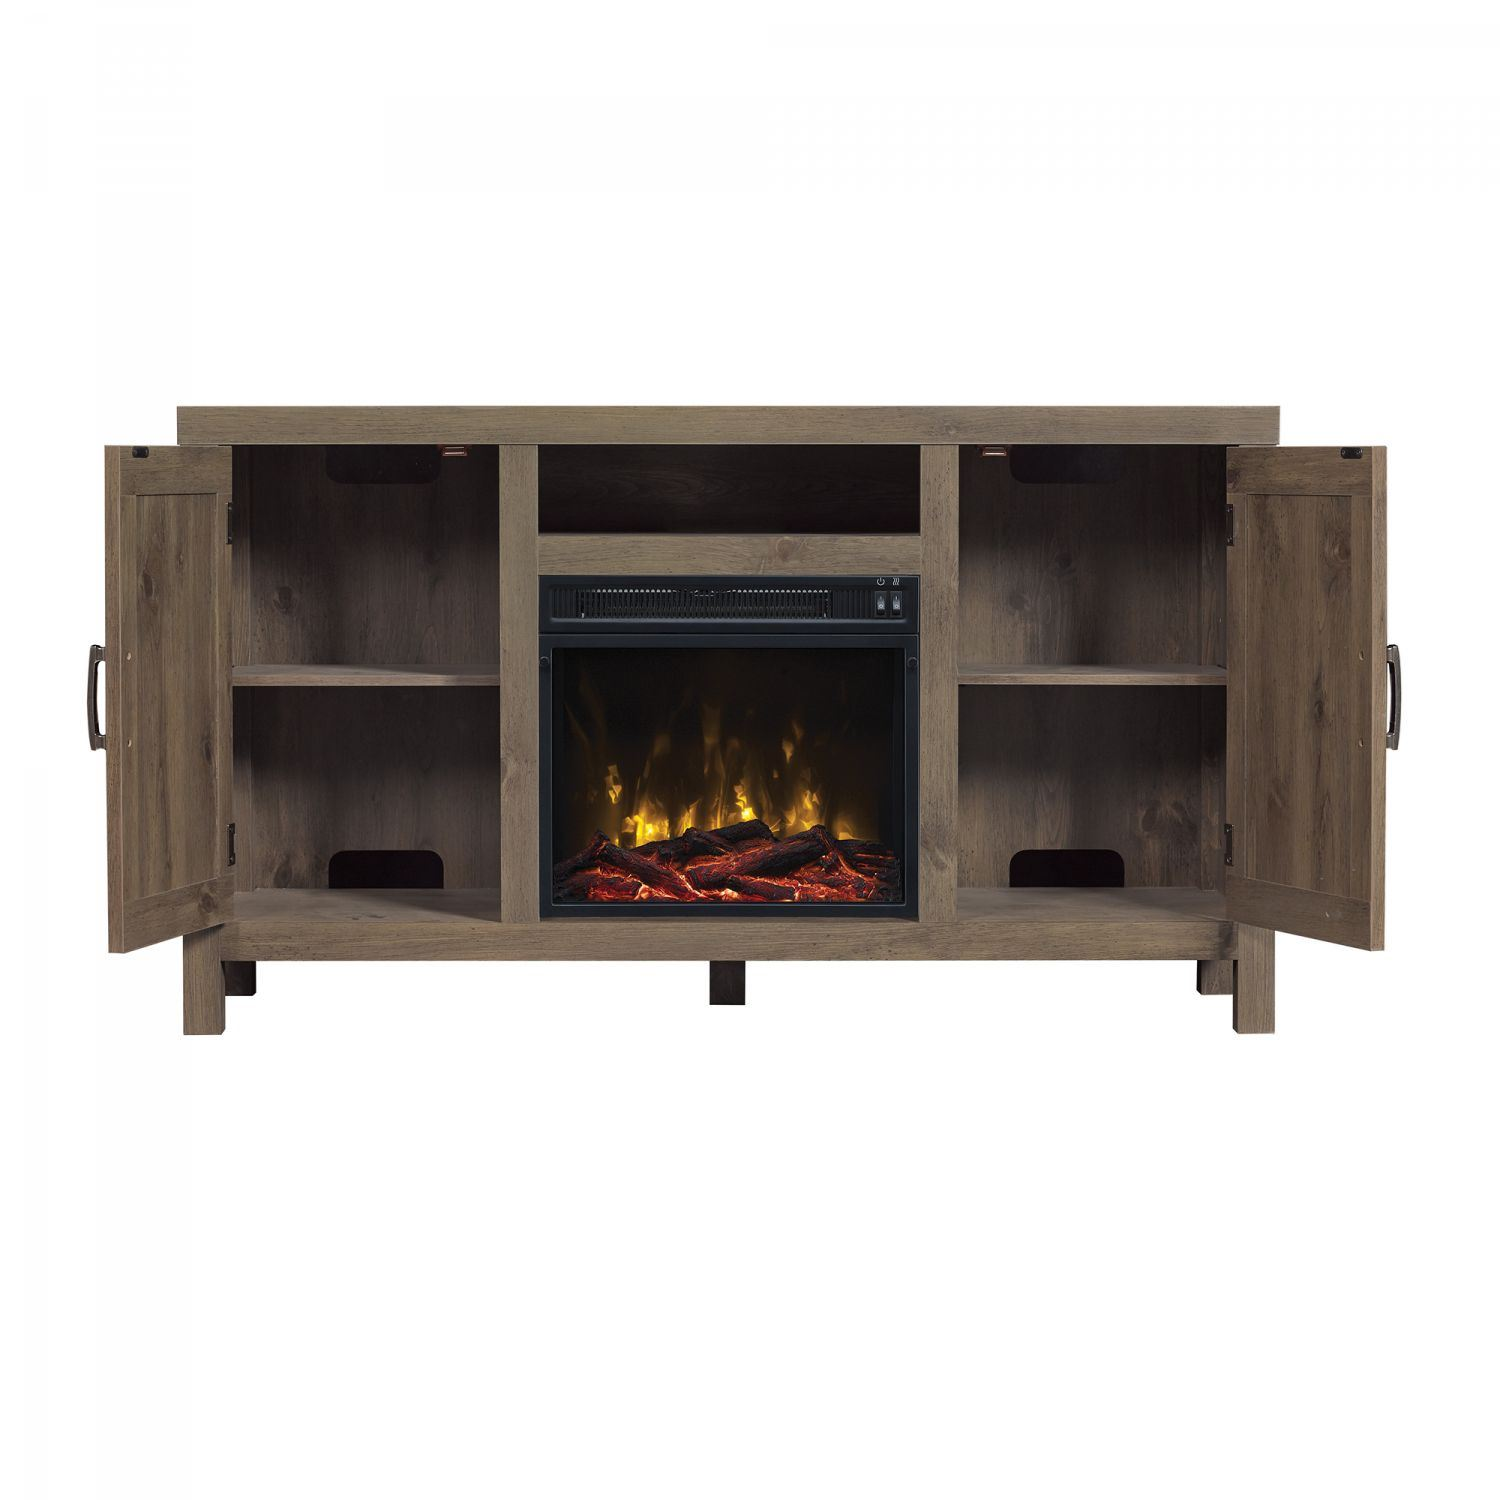 humboldt tv stand for tvs up to 55 with fireplace 18mm6076 pi14s classic flame twin star. Black Bedroom Furniture Sets. Home Design Ideas